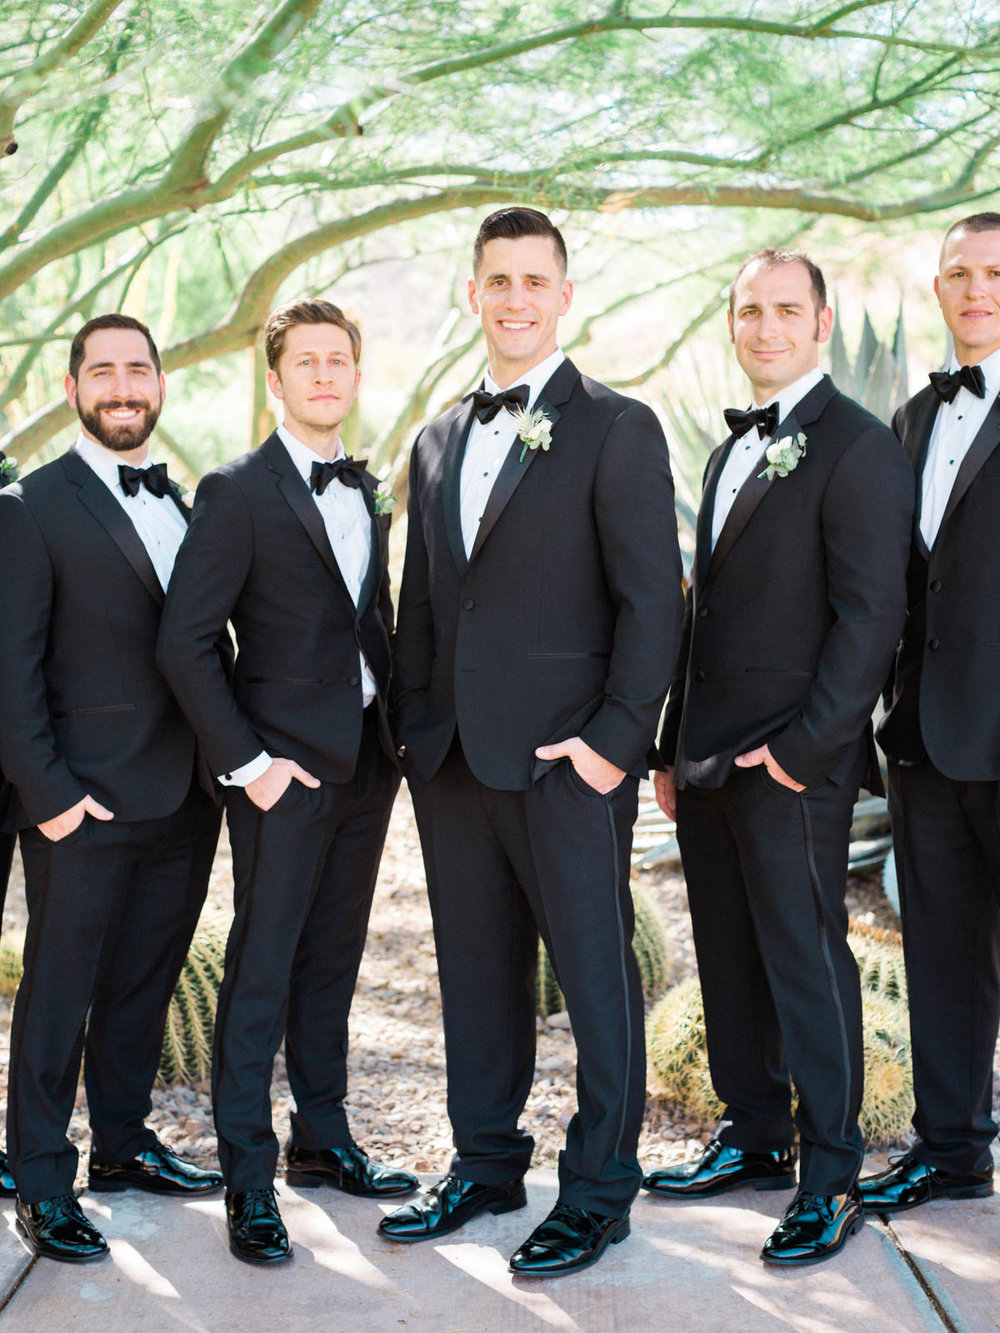 Groom and groomsmen in black tuxedos captured by Tucson Wedding Photographers Betsy & John